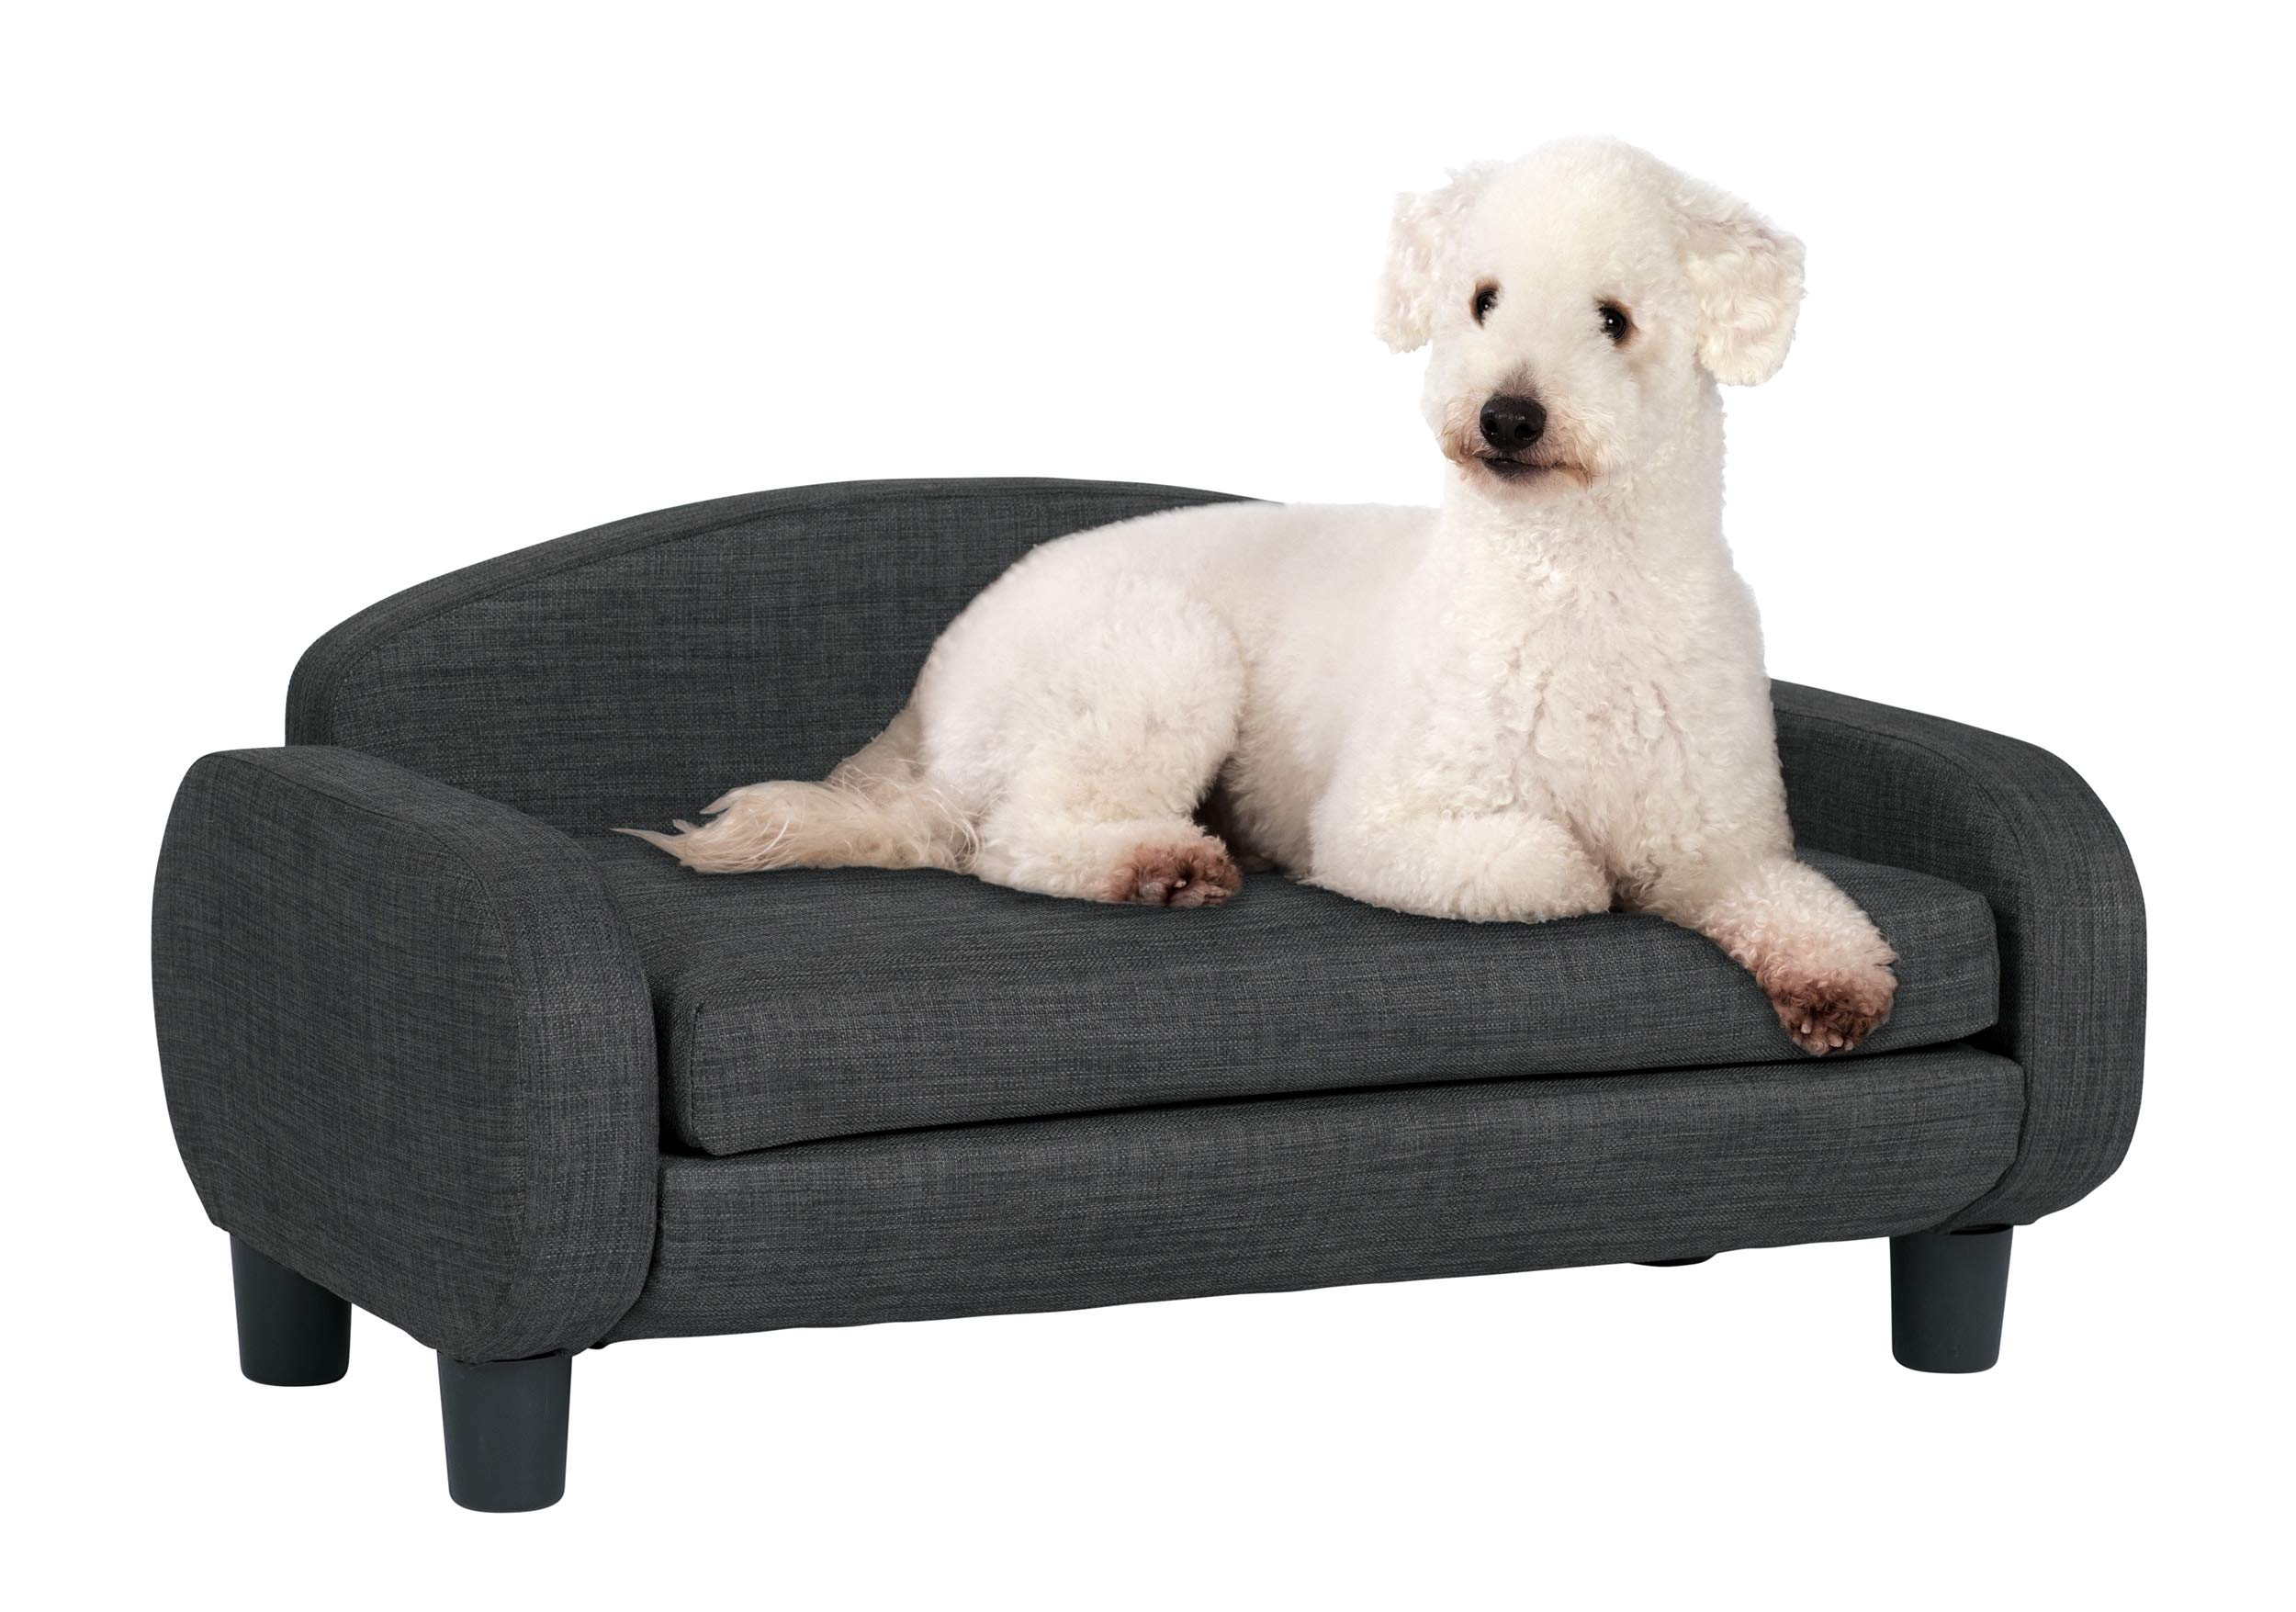 Paws & Purrs Modern Pet Sofa 31.5'' Wide by 19.5'' Deep Low Back Lounging Bed with Removable Mattress Cover in Gray by Paws & Purrs